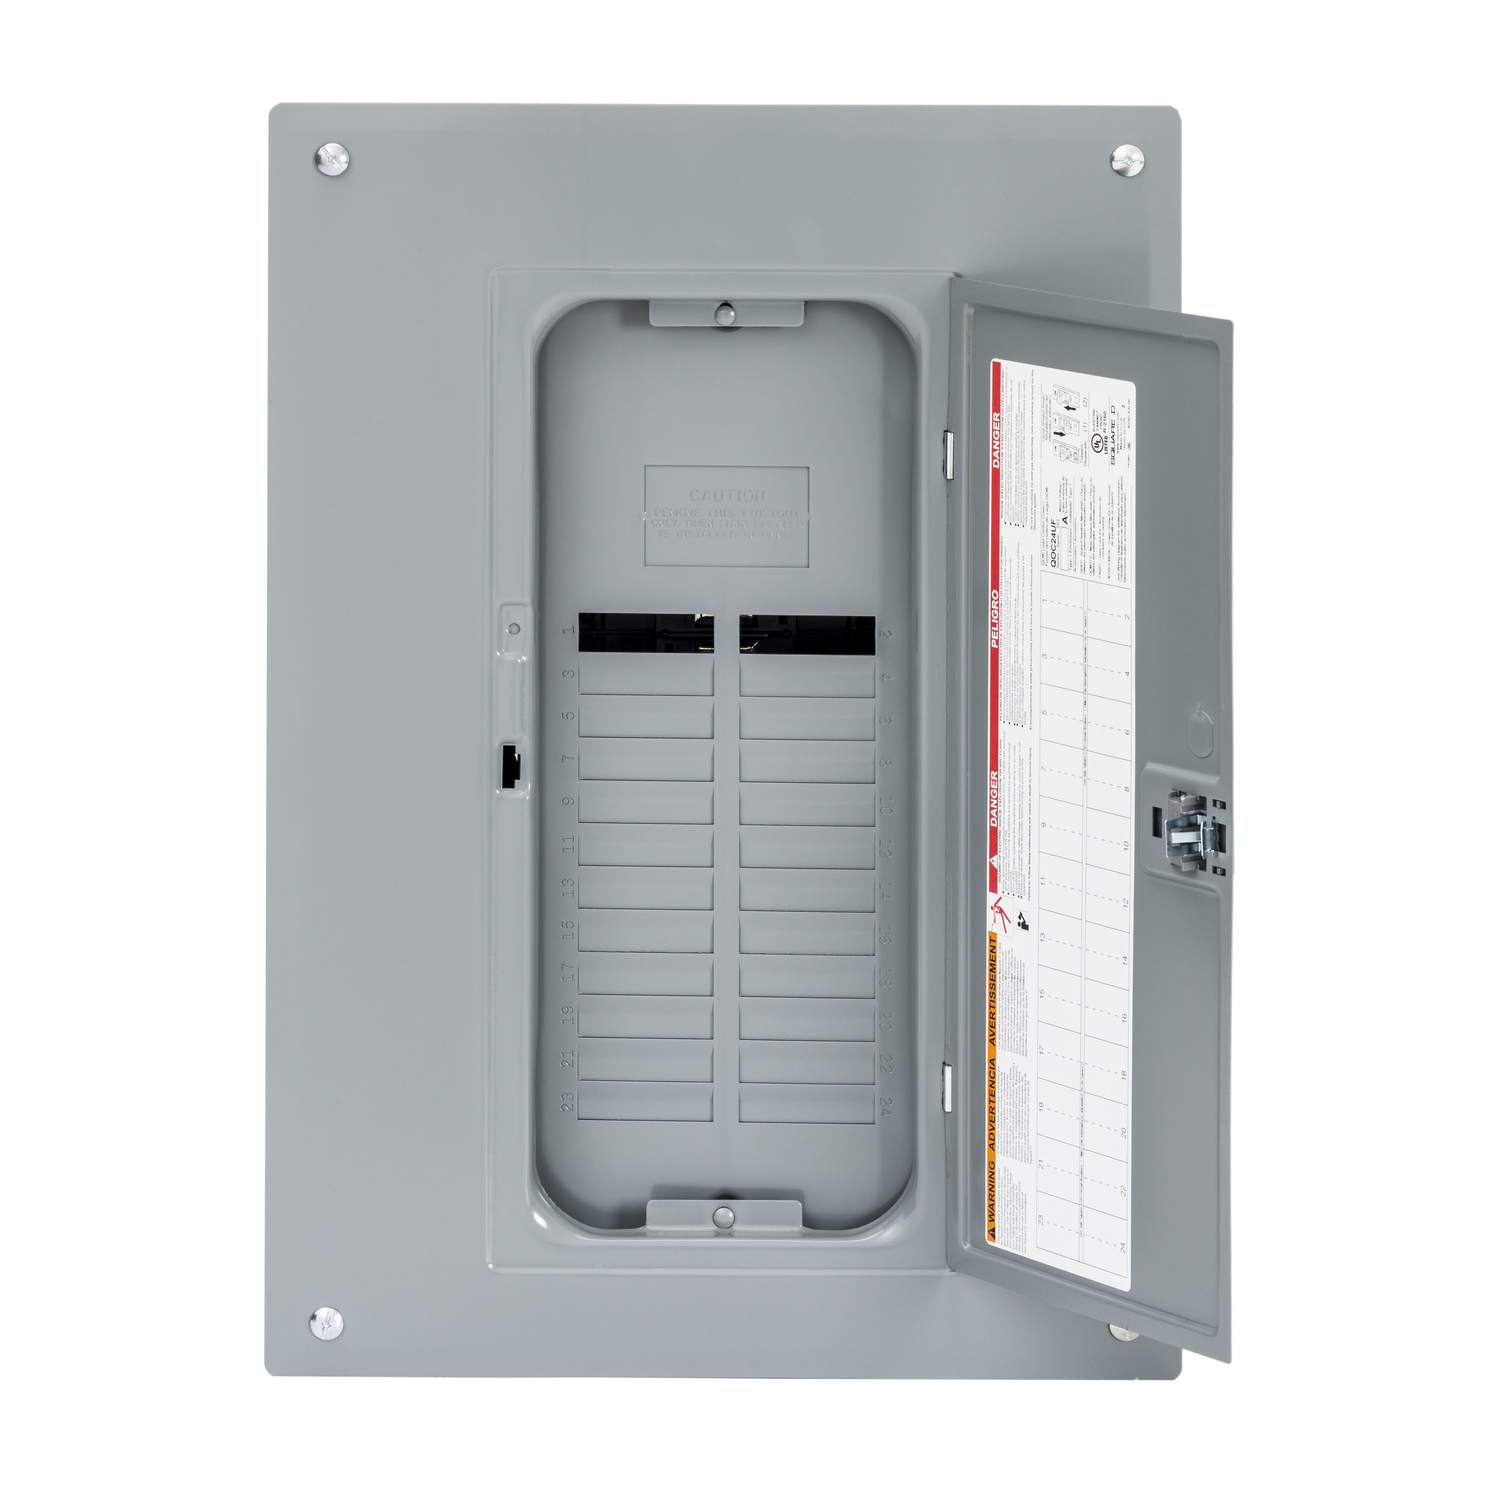 120 240 30 Amp Fuse Box Trusted Wiring Diagram Wadsworth Old 60 Square D Latch Residential Electrical Symbols U2022 600